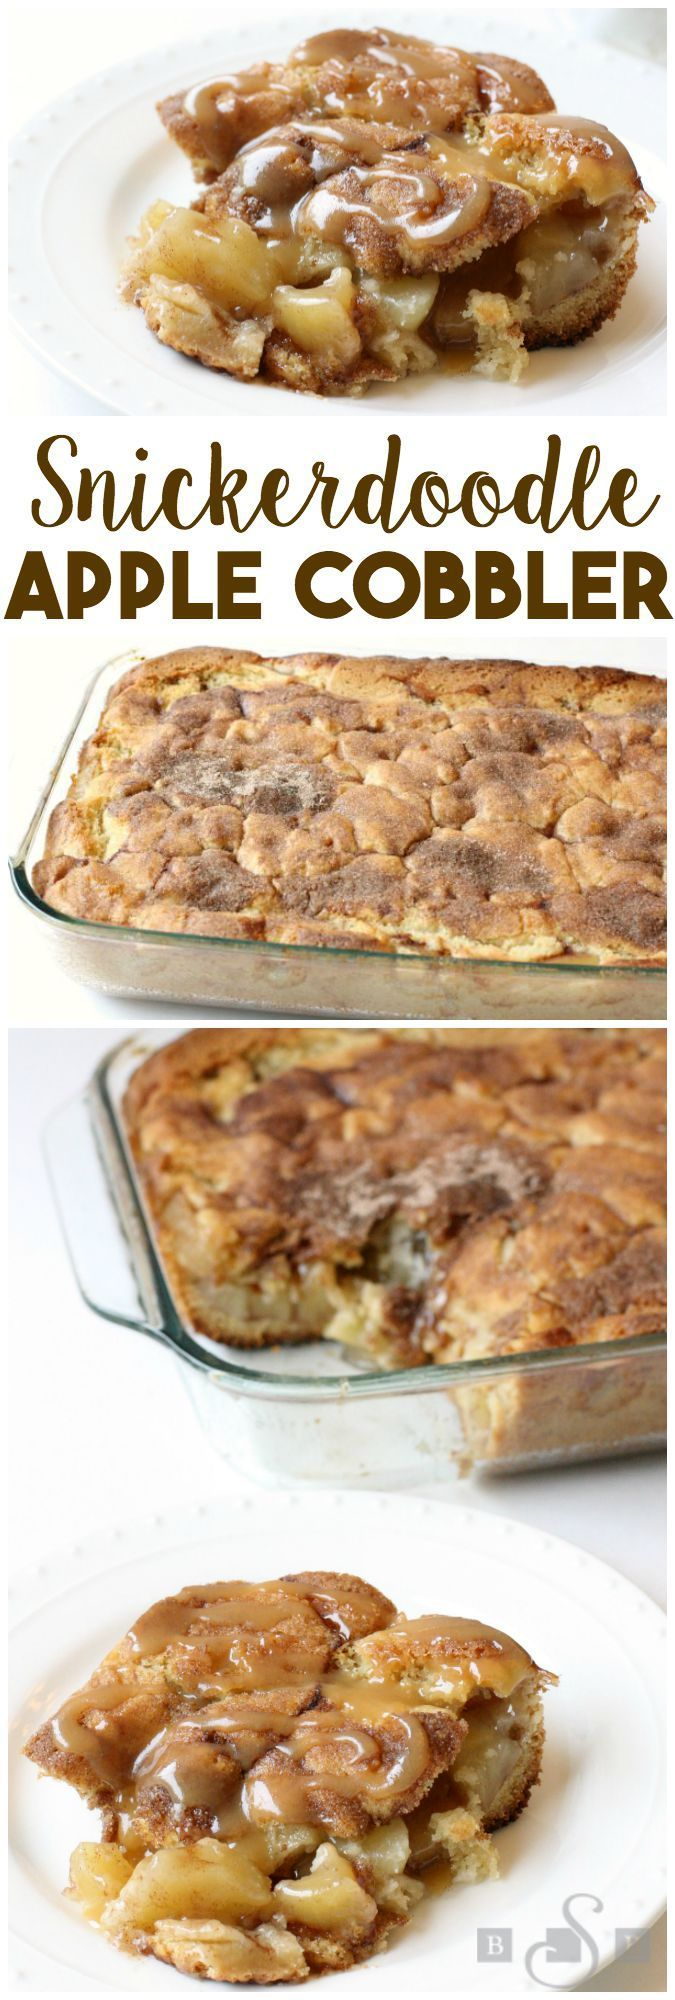 Snickerdoodle Apple Cobbler. Vanilla ice-cream or whipped cream on top is a must!